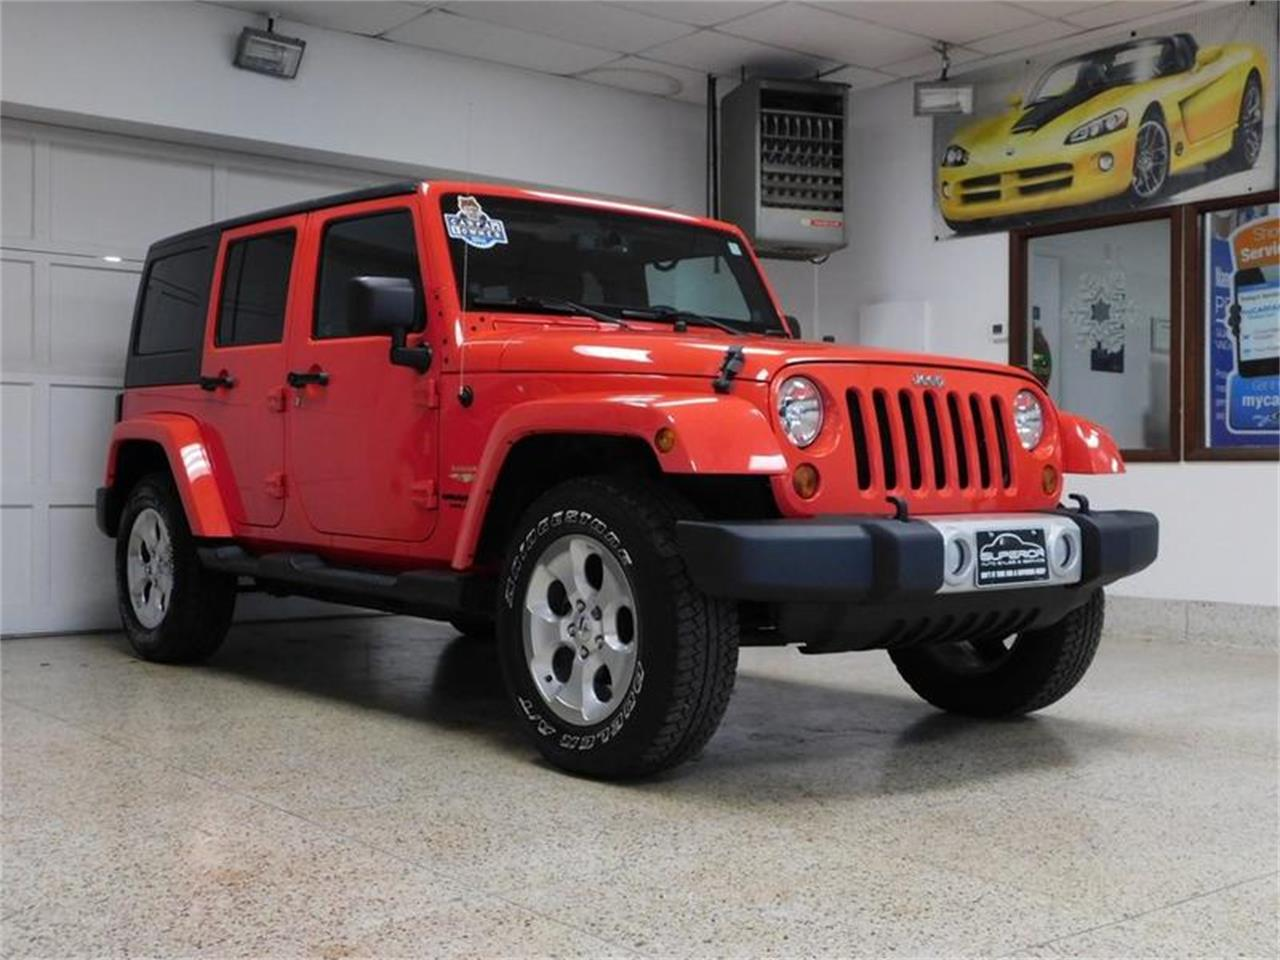 2013 Jeep Wrangler for sale in Hamburg, NY – photo 63